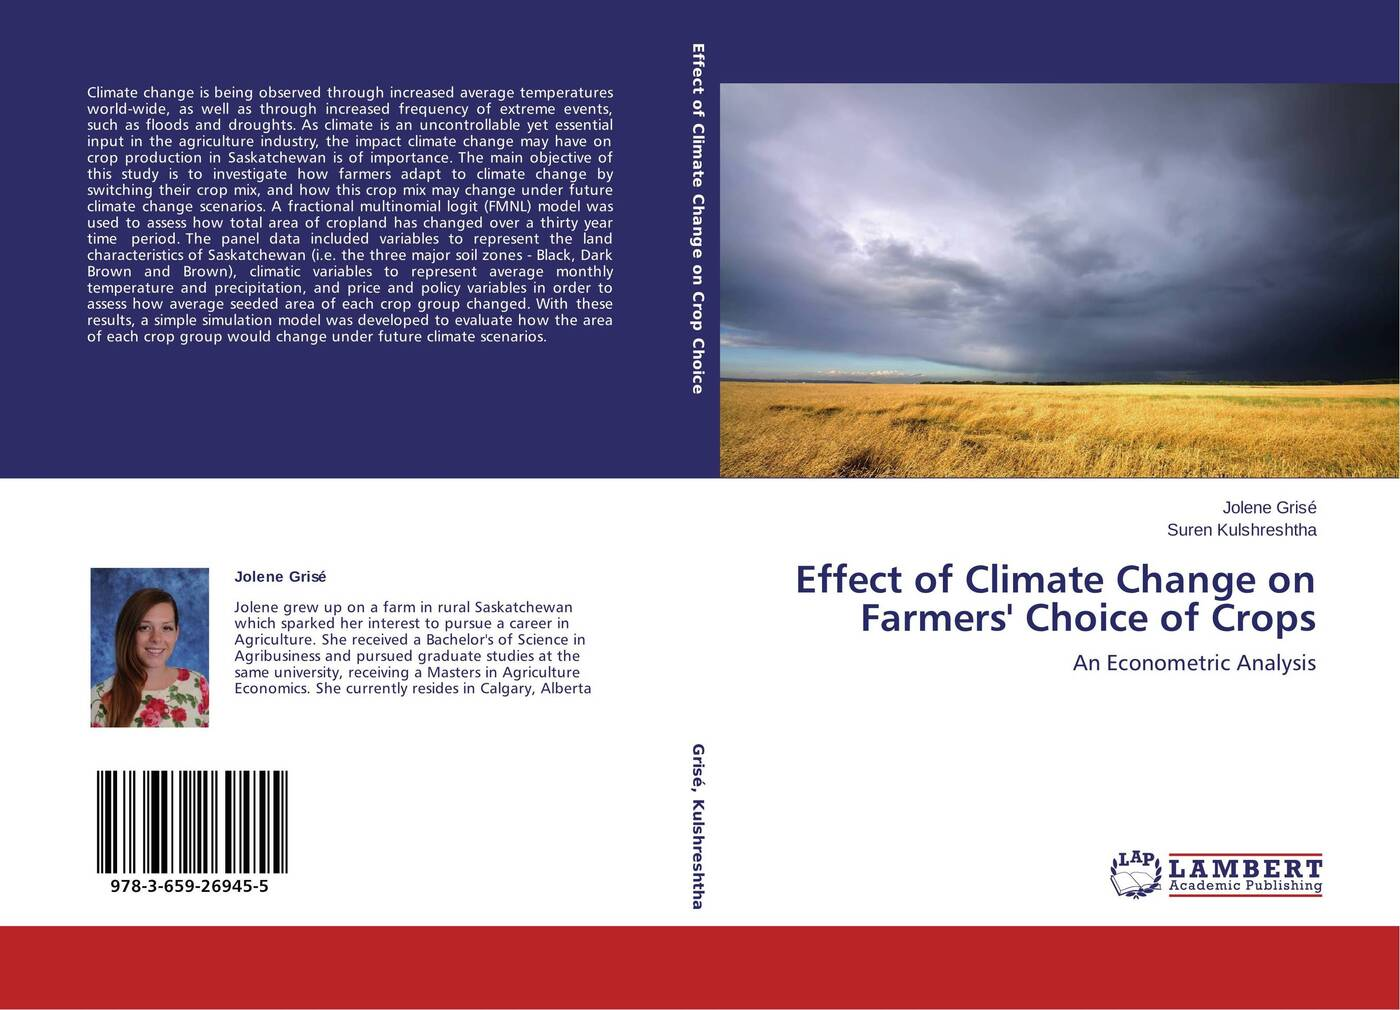 Jolene Grisé and Suren Kulshreshtha Effect of Climate Change on Farmers' Choice of Crops climate changed